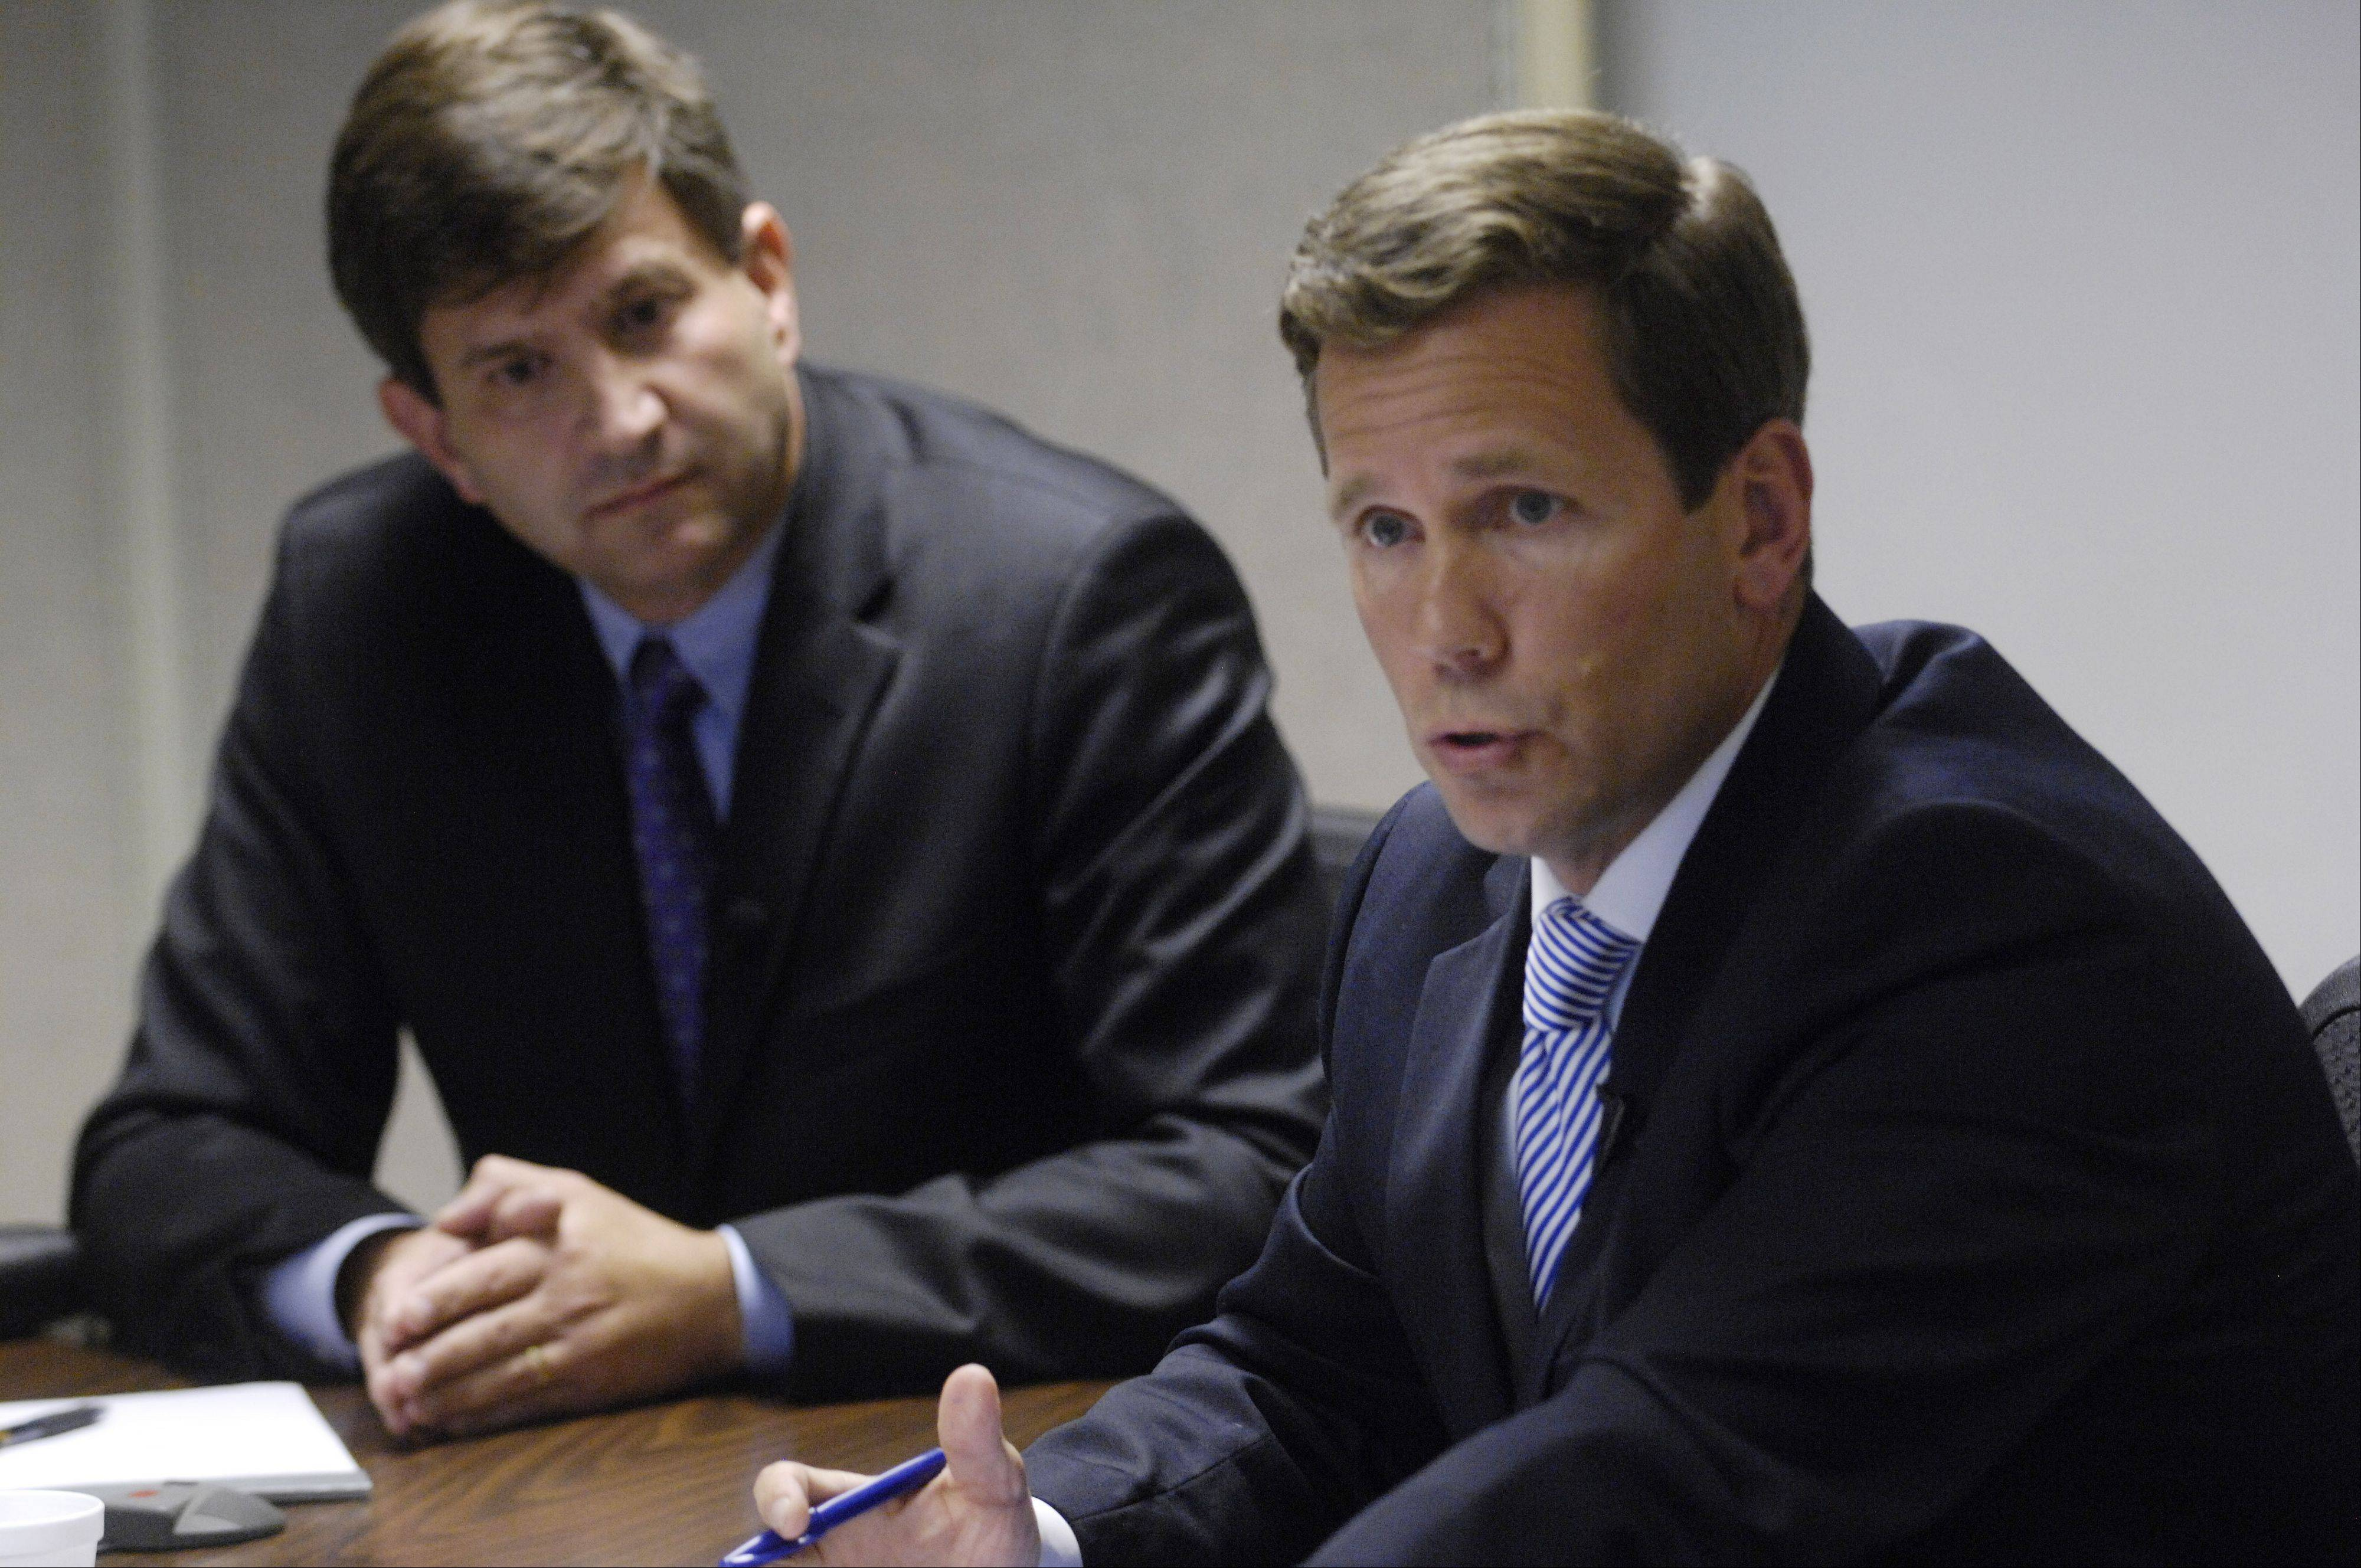 Republican U.S. Rep. Robert Dold, right, wants Democratic challenger Brad Schneider to retract a commercial he claims distorts his political record.